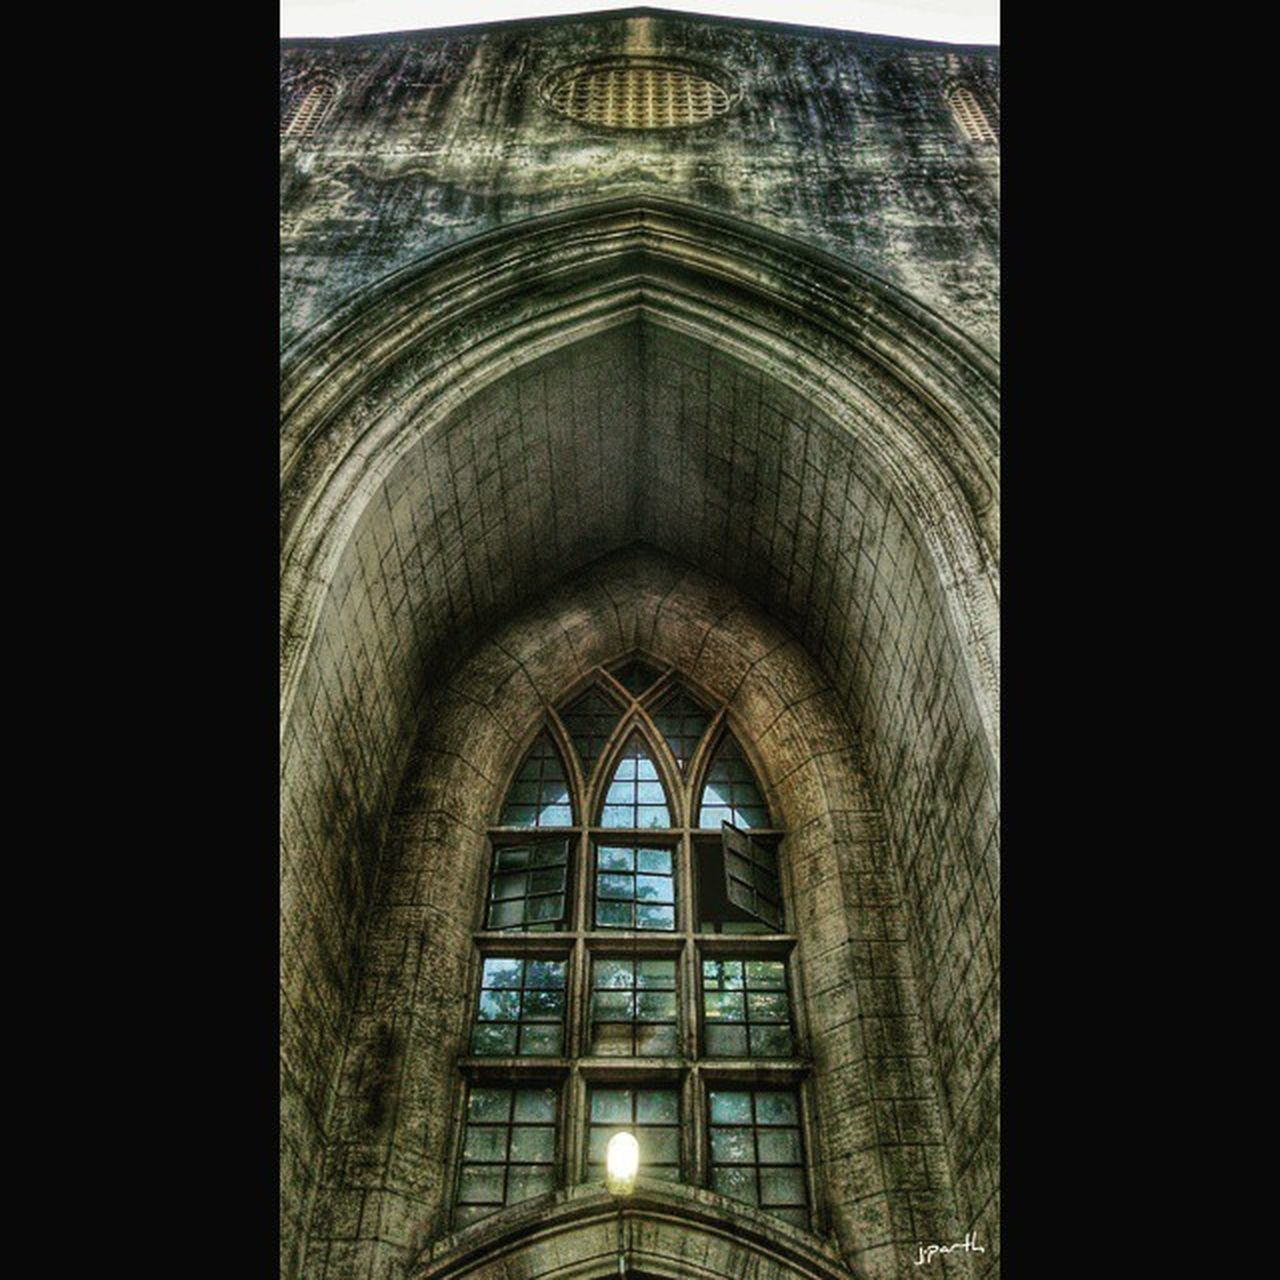 architecture, built structure, indoors, arch, window, transfer print, low angle view, history, building exterior, auto post production filter, interior, no people, architectural feature, pattern, building, ceiling, old, day, design, sunlight